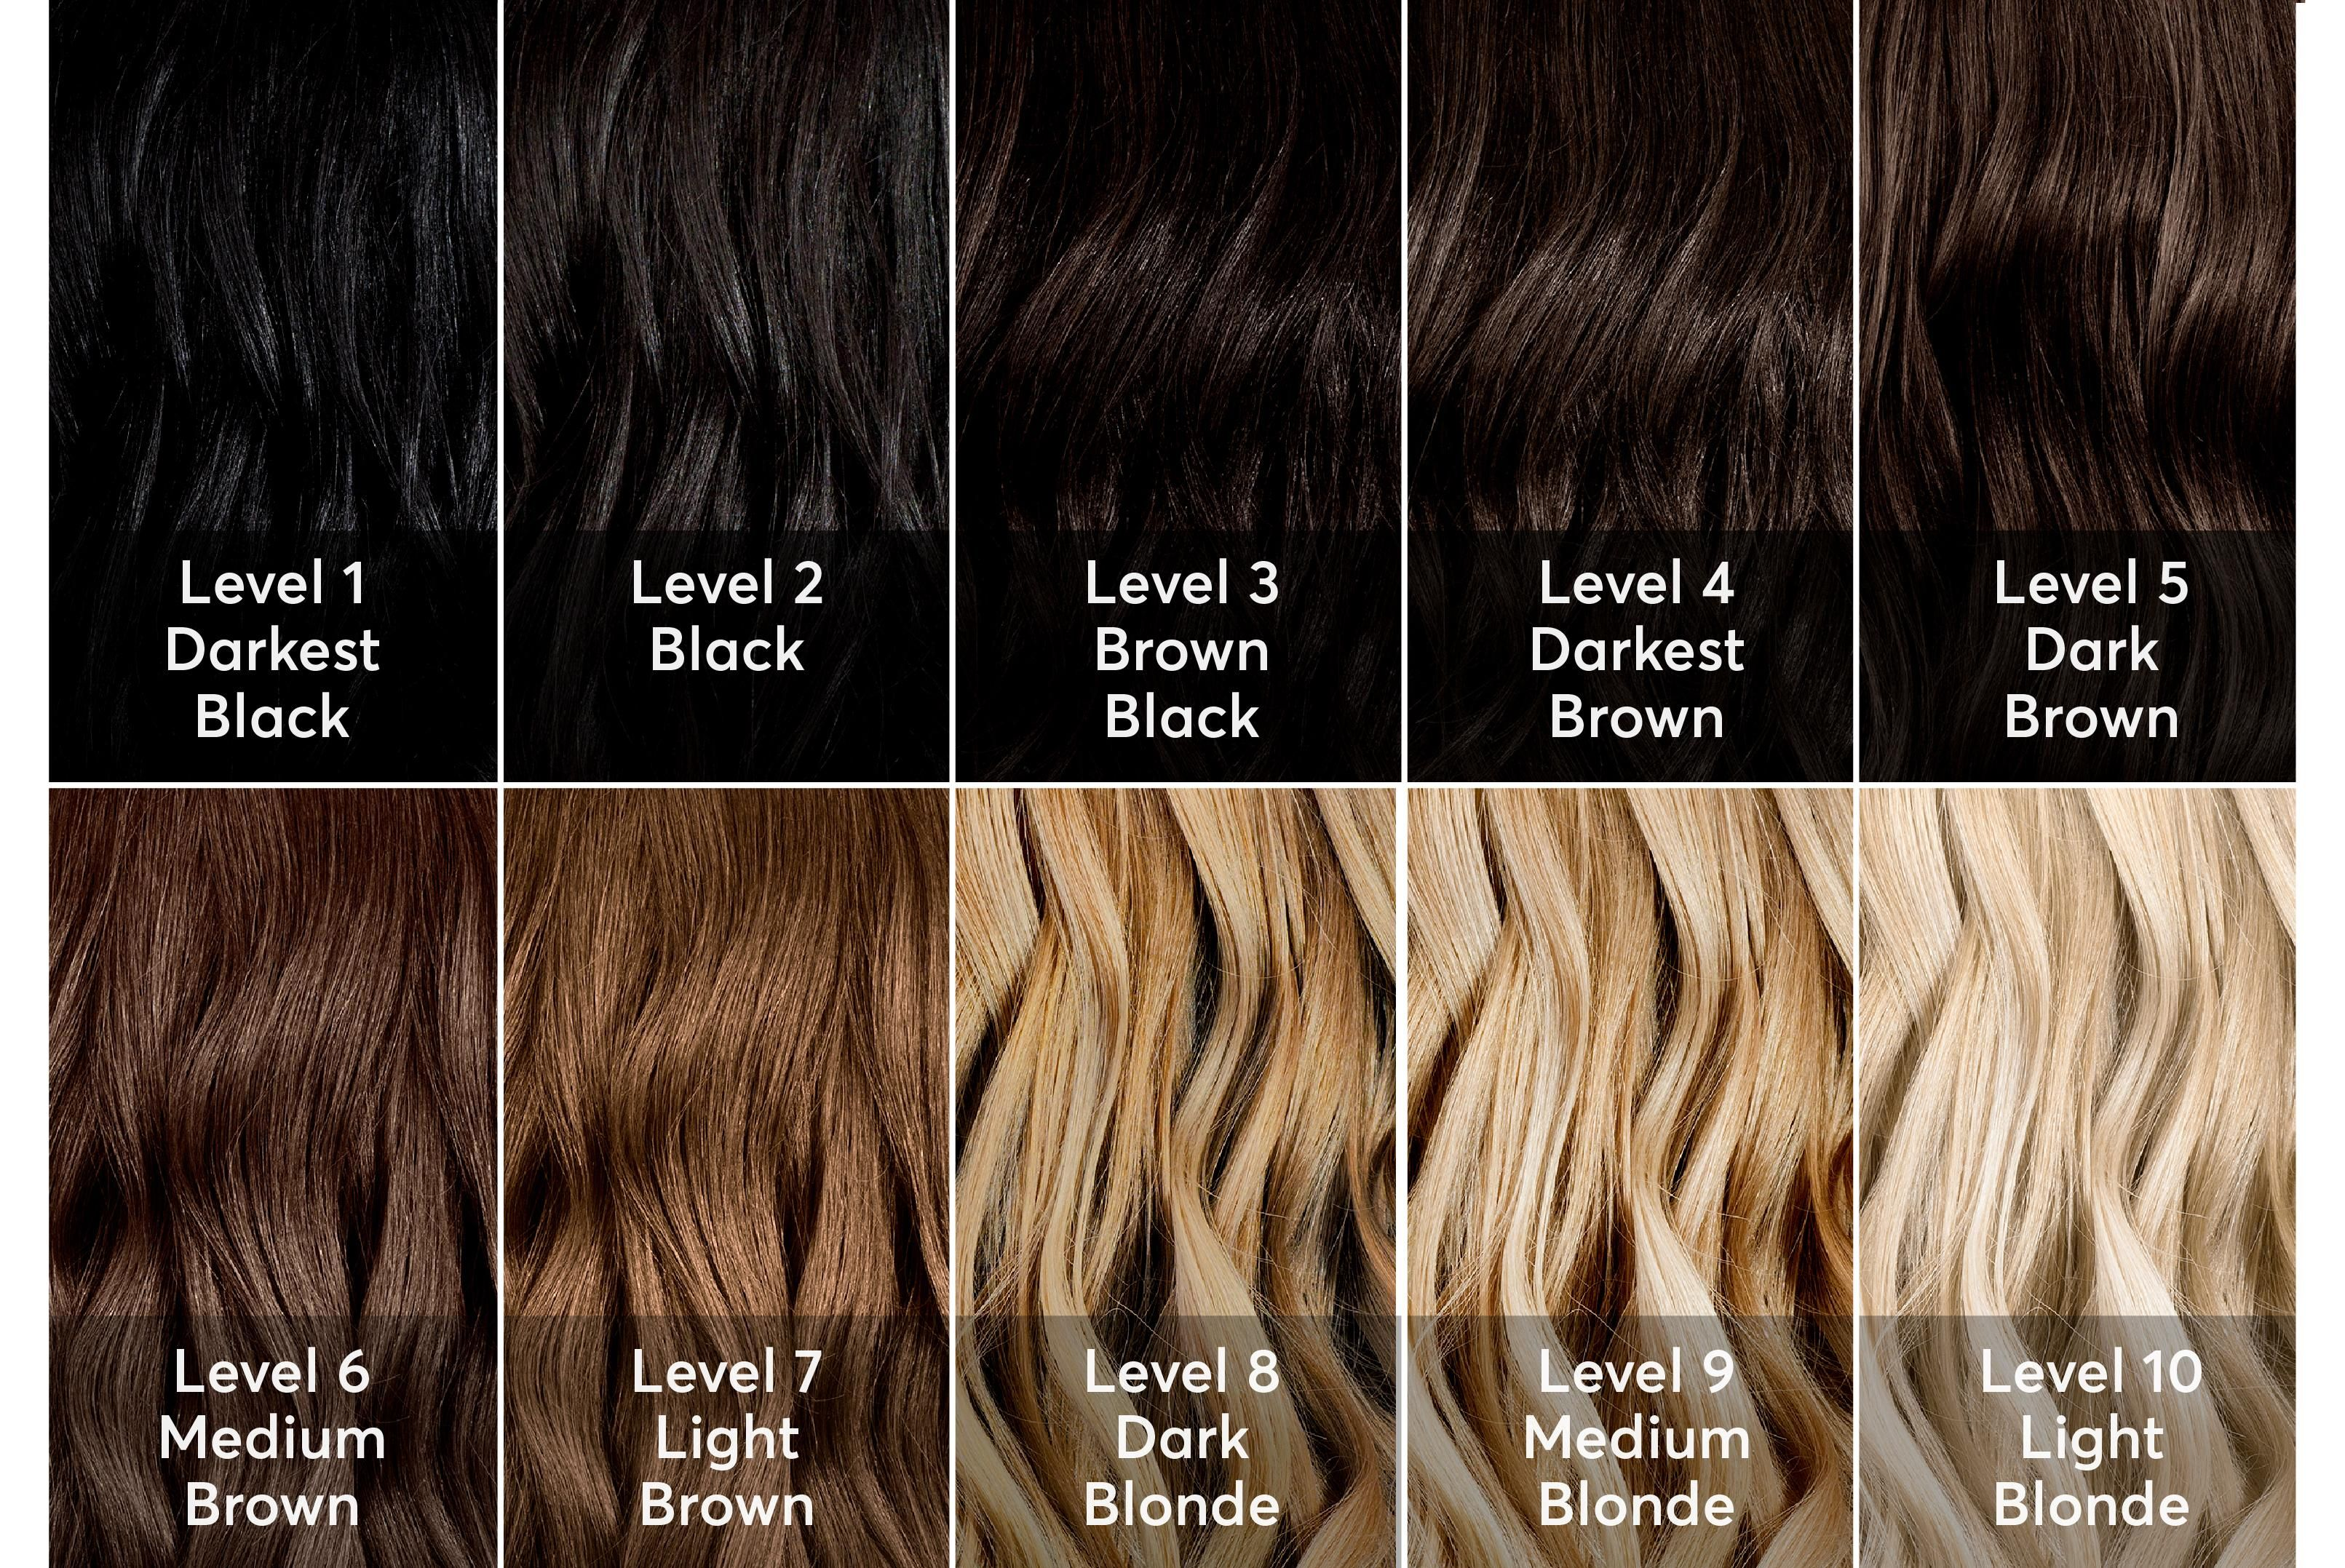 Brunette Hair Color Choices A Hair Color Chart To Get Glamorous Results At Home Blonde Hair Color Chart Ion Hair Color Chart At Home Hair Color